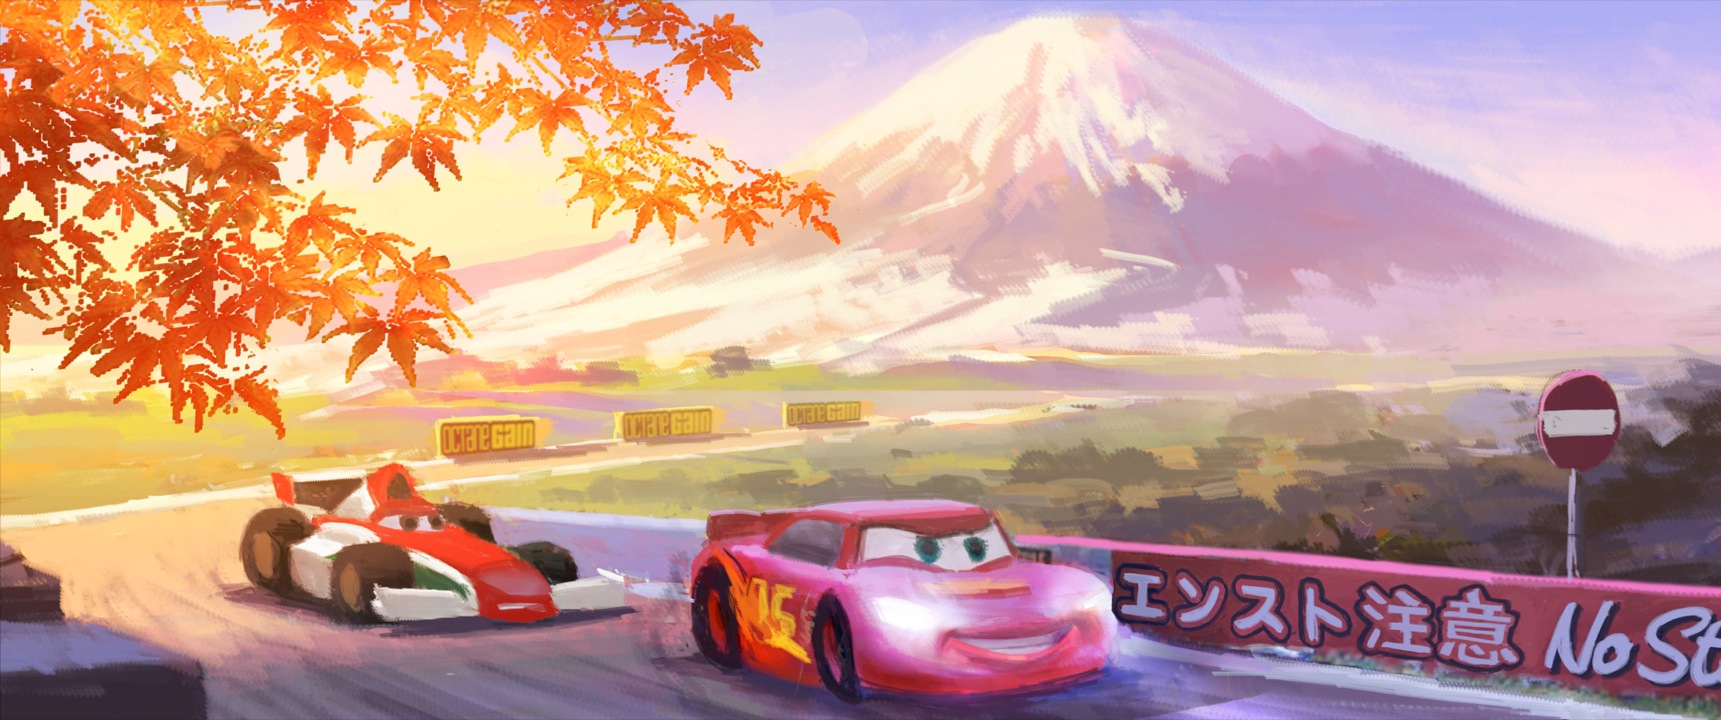 Image Gallery Cars Movie Trailers Itunes